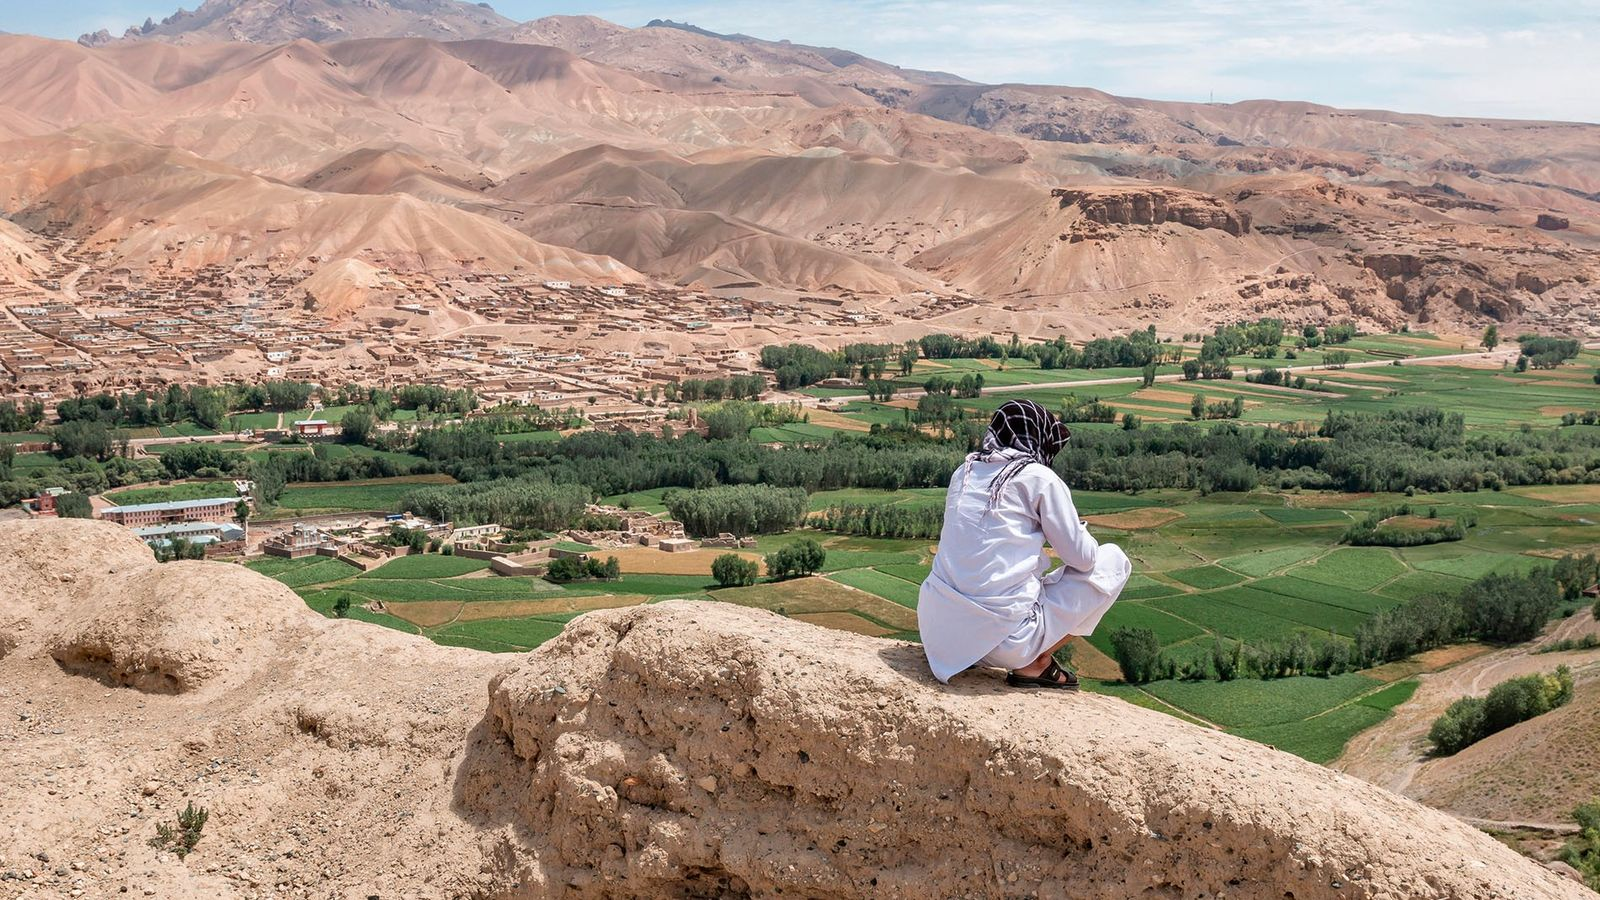 Sweeping views across the Bamiyan Valley, Afghanistan.